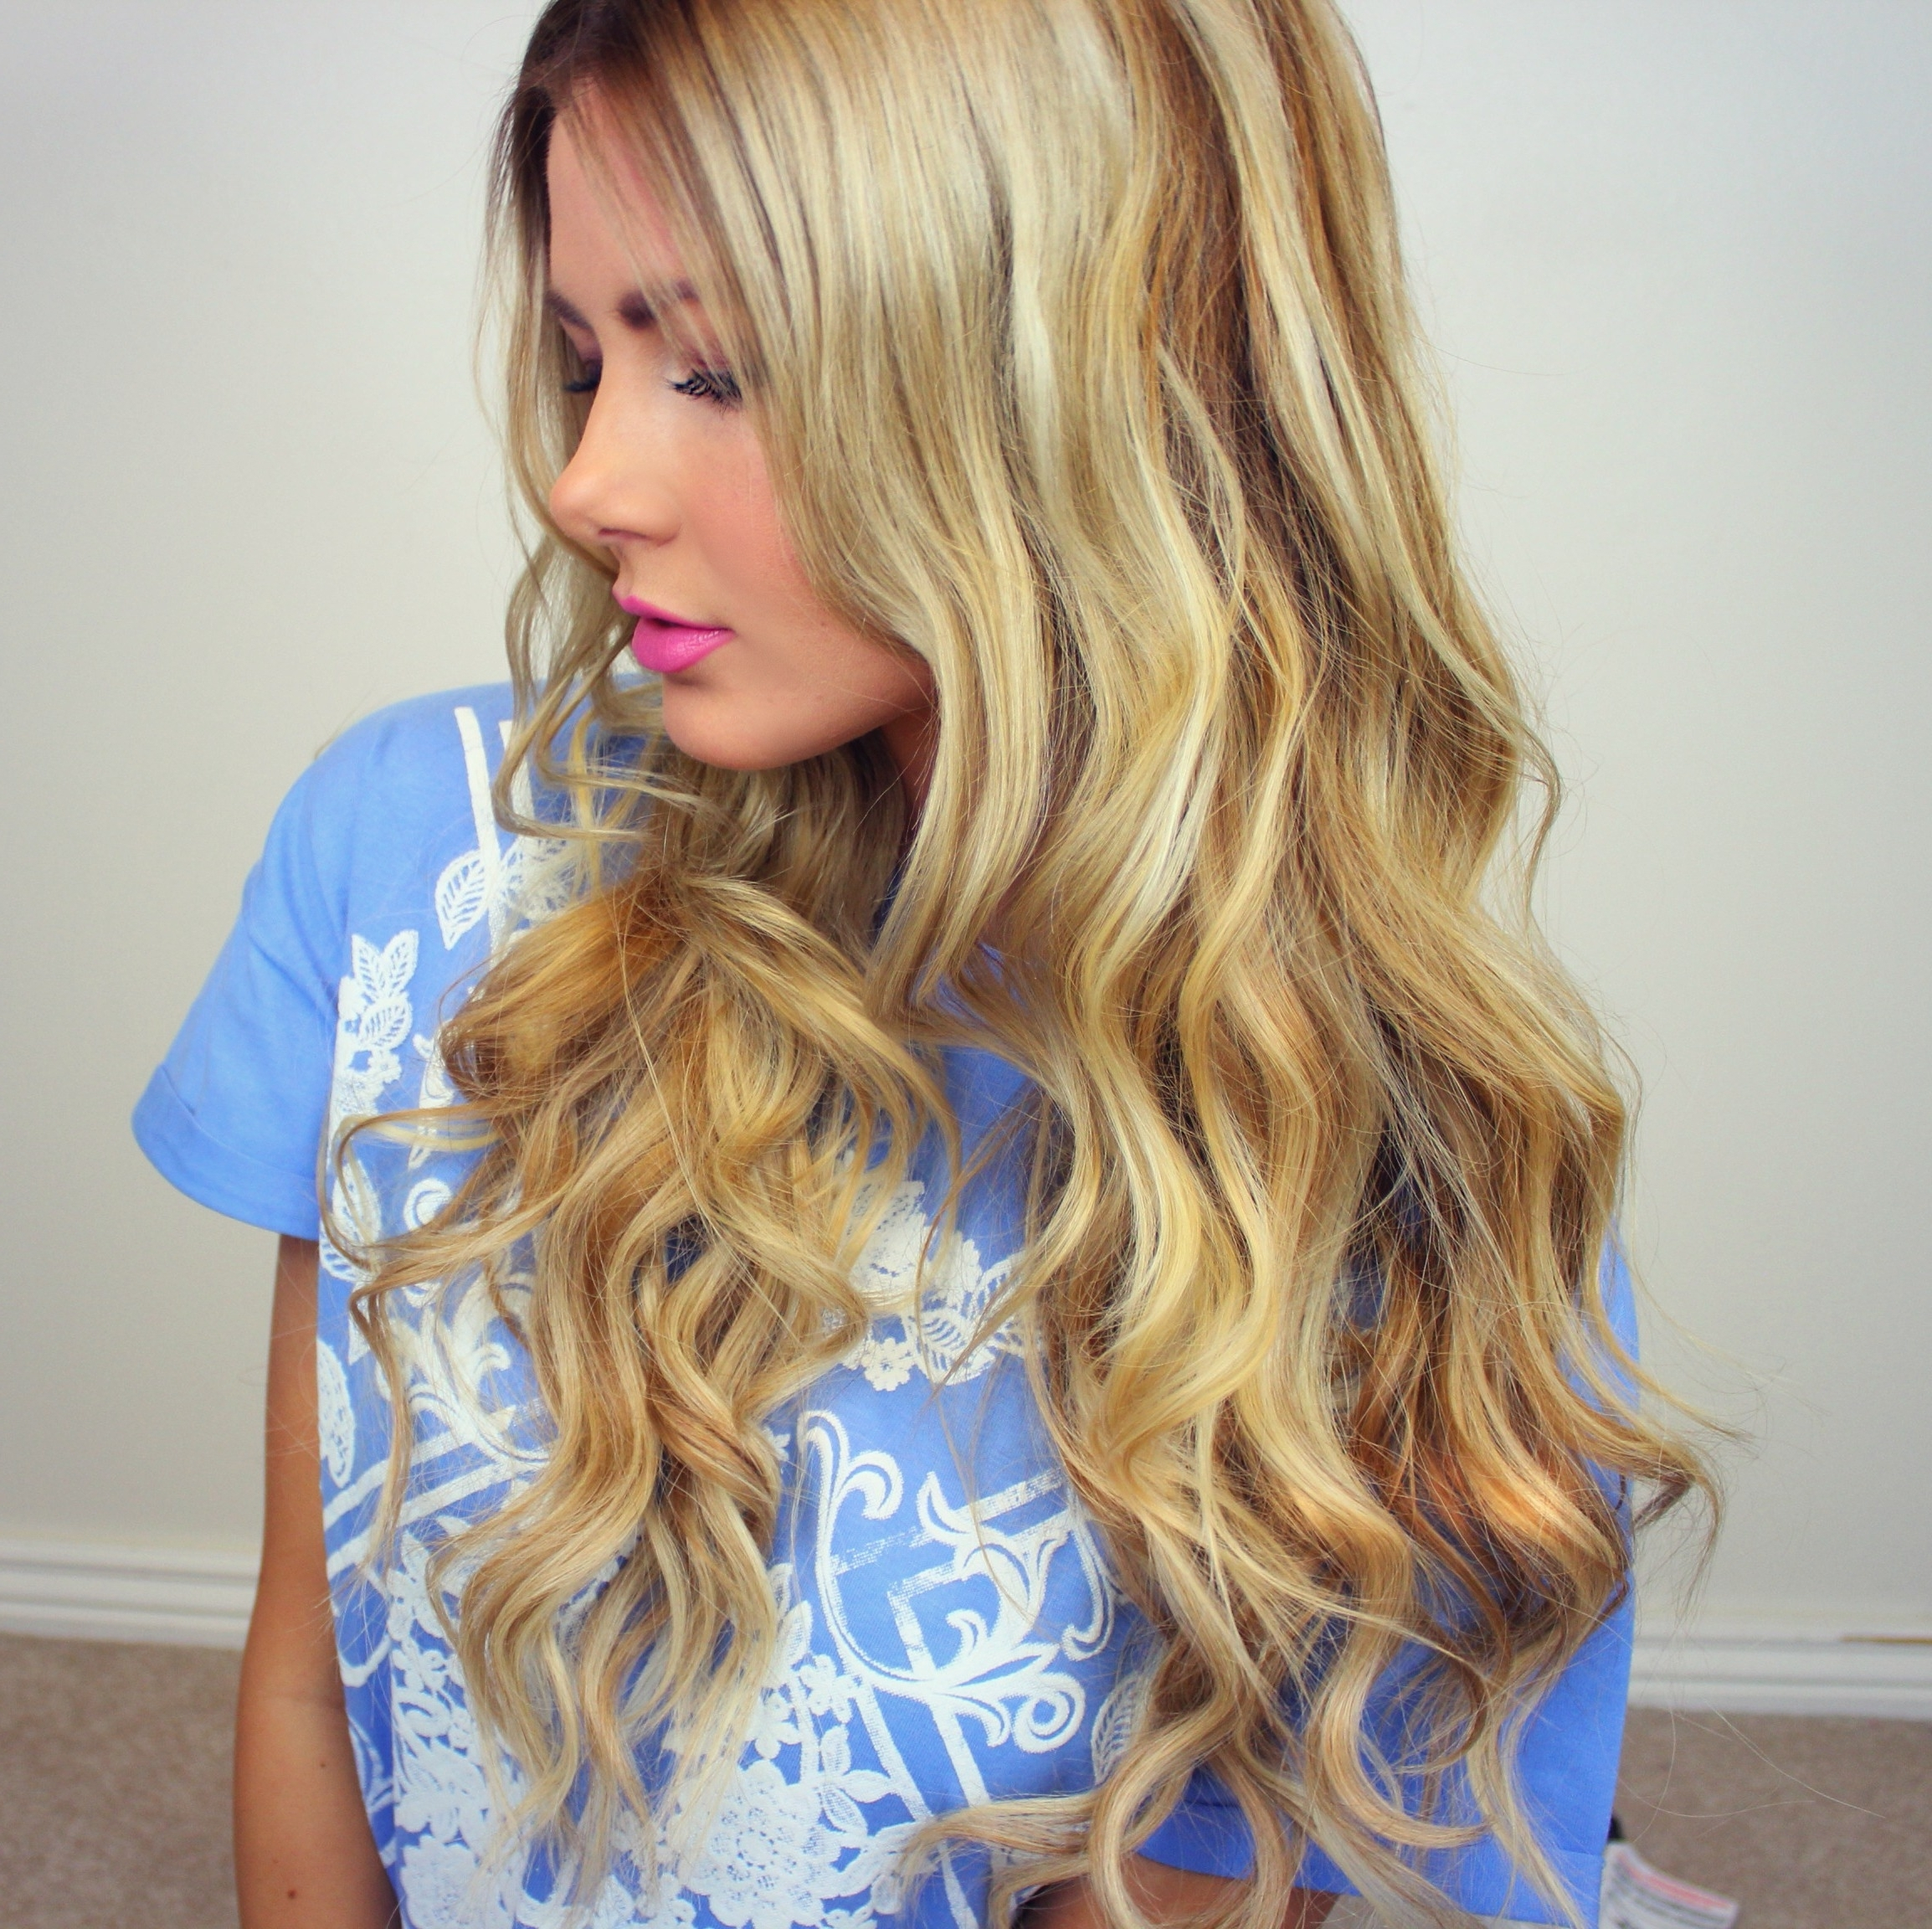 2017 Hottest Blonde Hairstyles – New Hairstyles 2017 For Long, Short Regarding Preferred Amber Waves Blonde Hairstyles (View 11 of 20)